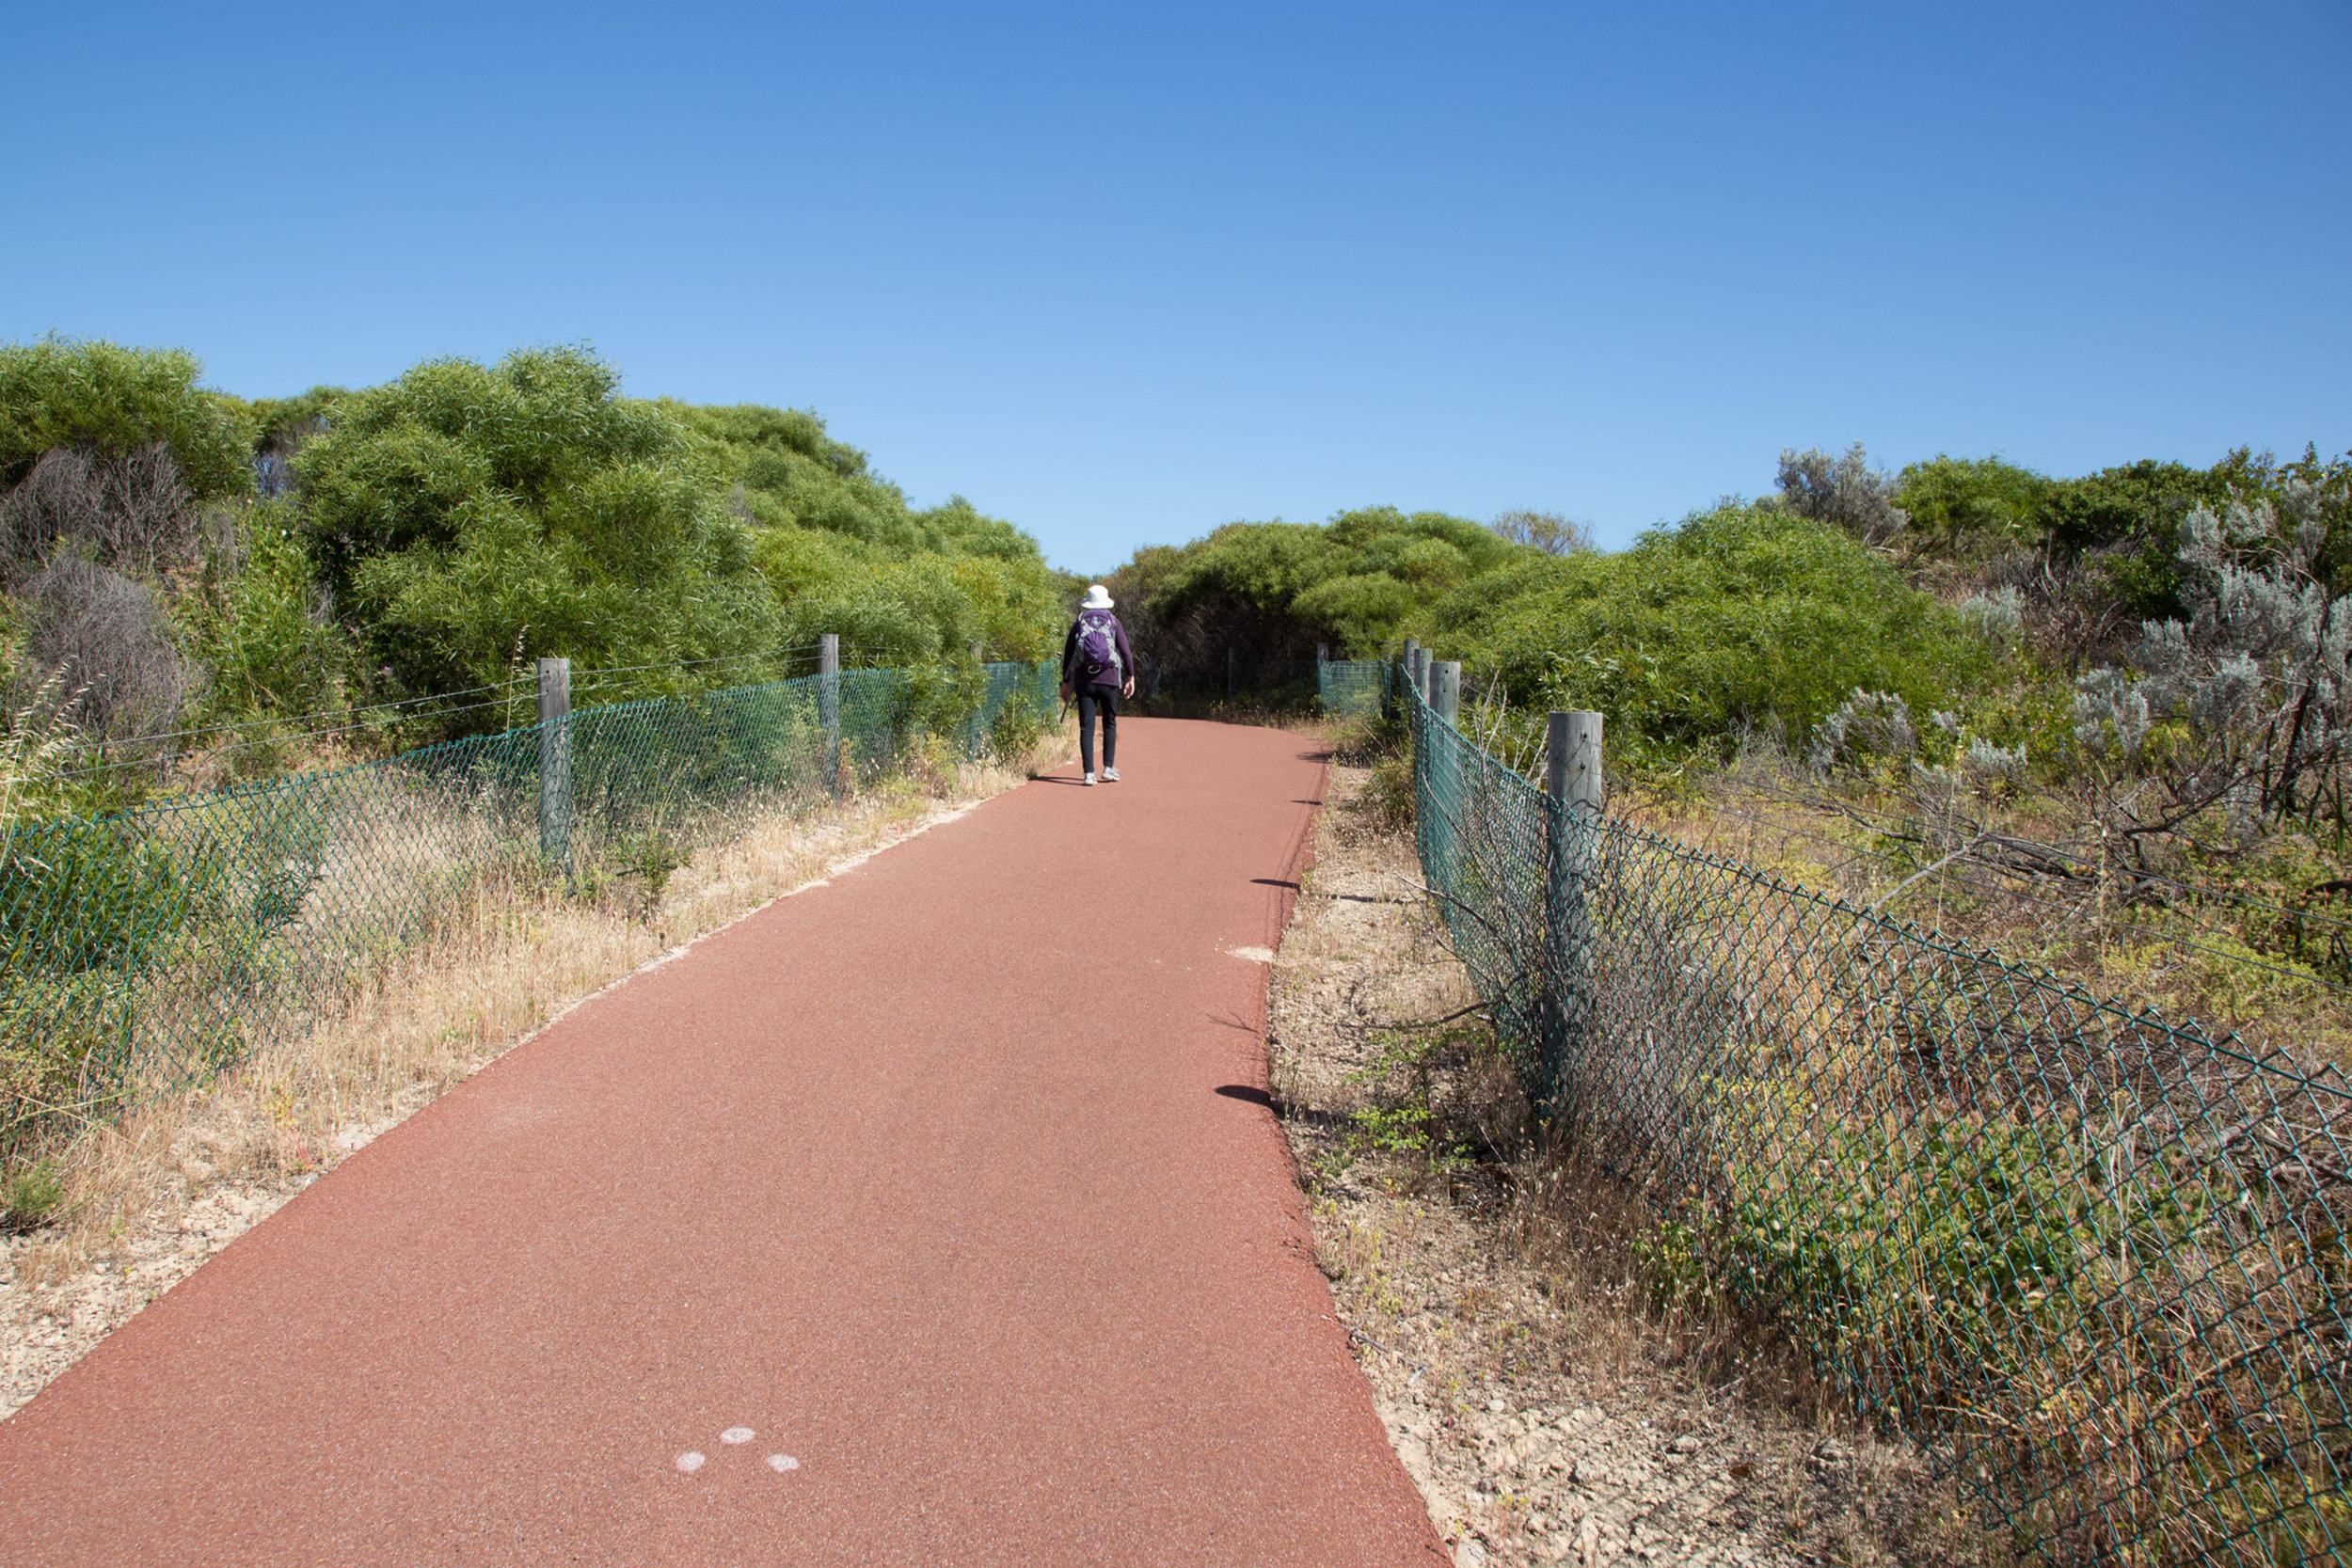 Plate 2: Typical section of the path for the first part of the walk.